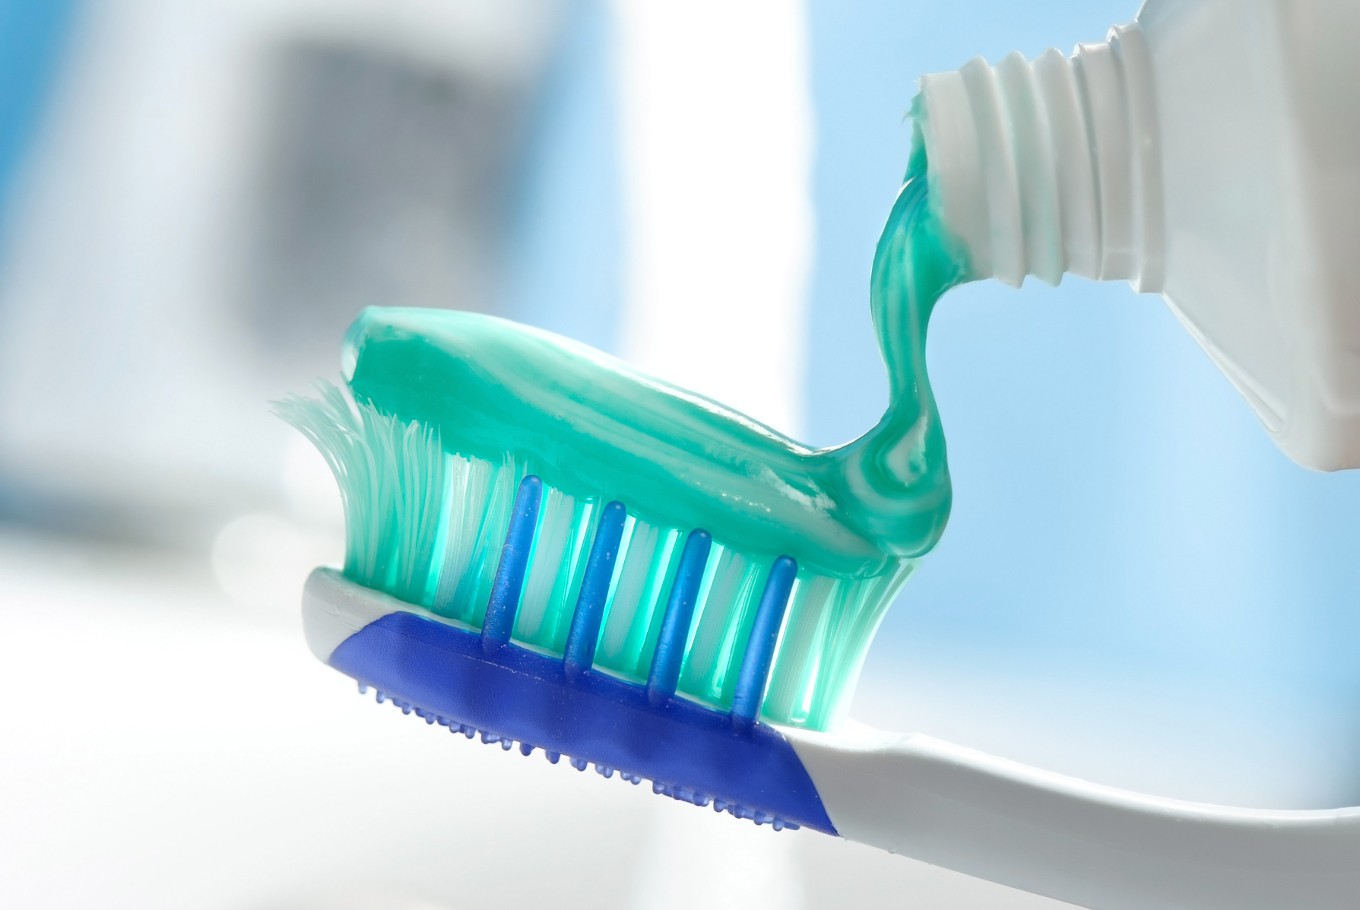 Study: Chemical used in toothpaste could increase osteoporosis risk in women